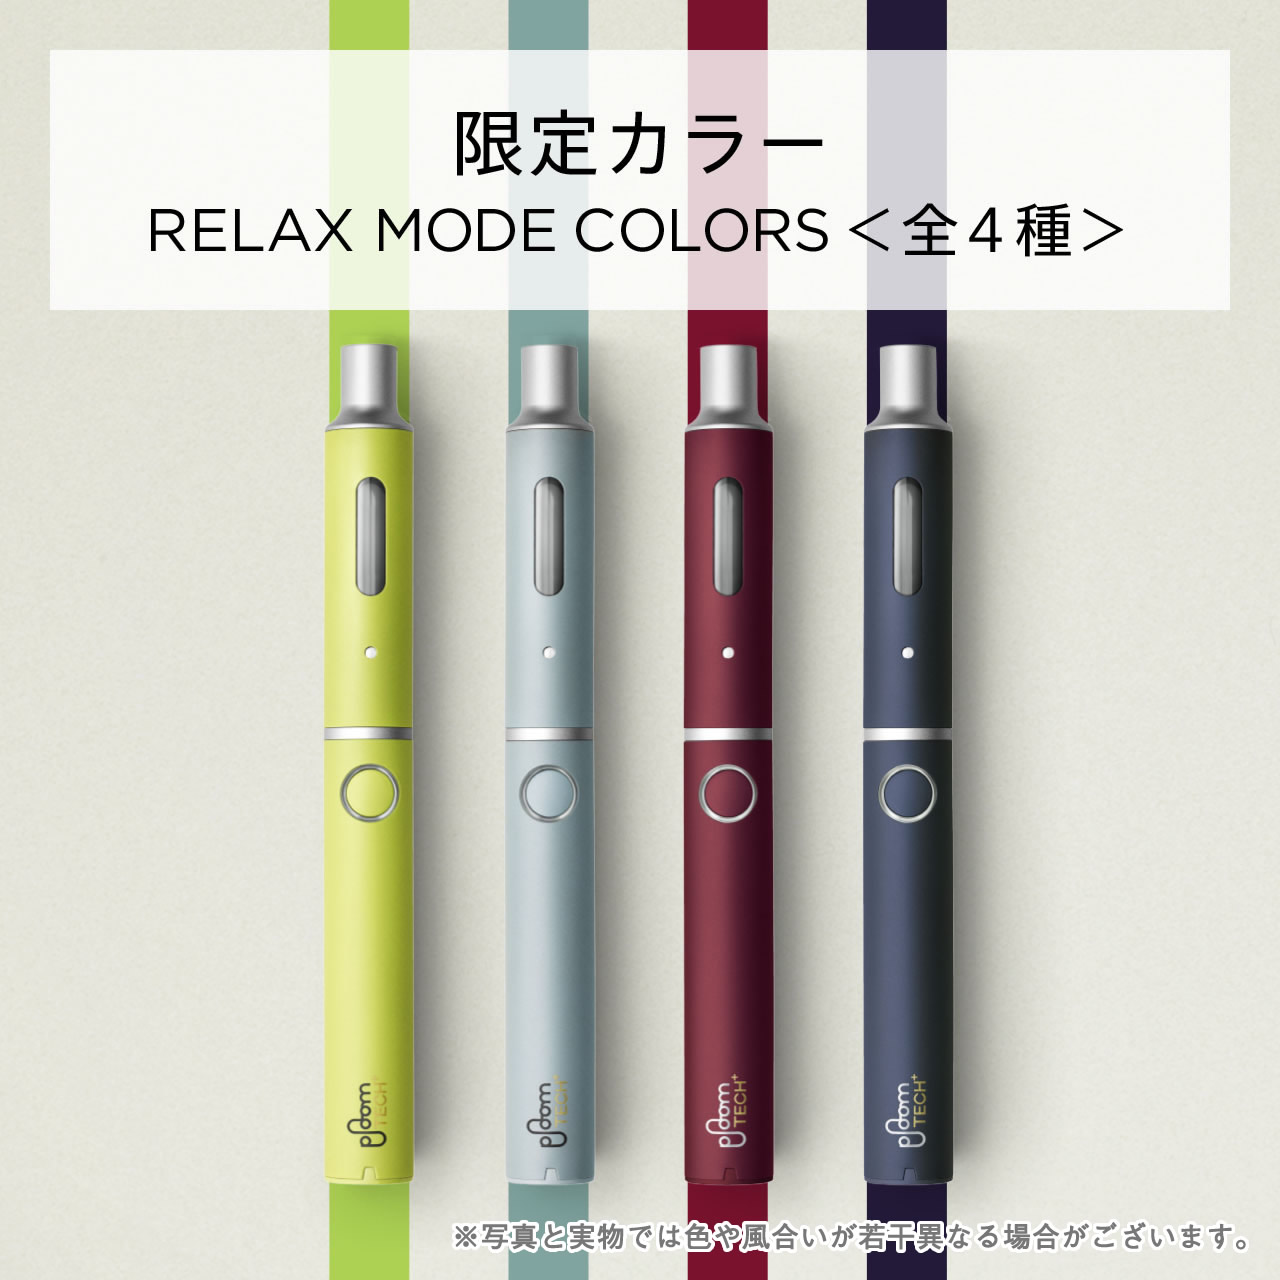 Ploom TECH+ キット<RELAX MODEカラー・全4種>